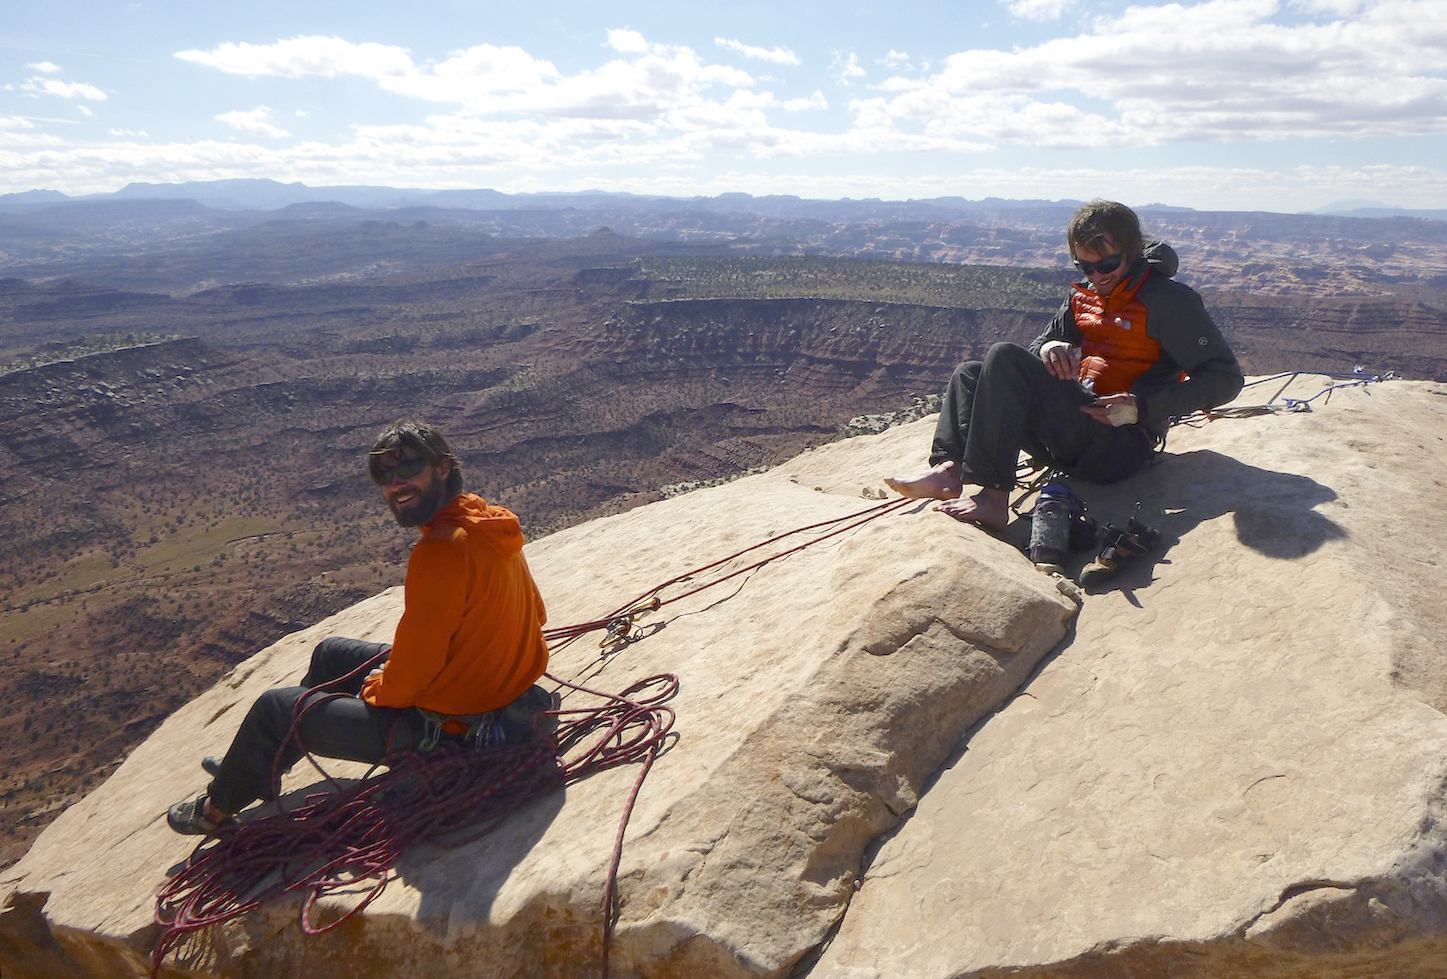 Nathan Martinez and Steve Dilk sit atop North Six Shooter in Indian Creek, Utah, in 2013. The area is now included in Bears Ears National Monument. Canyonlands National Park is in the background. [Photo] Derek Franz